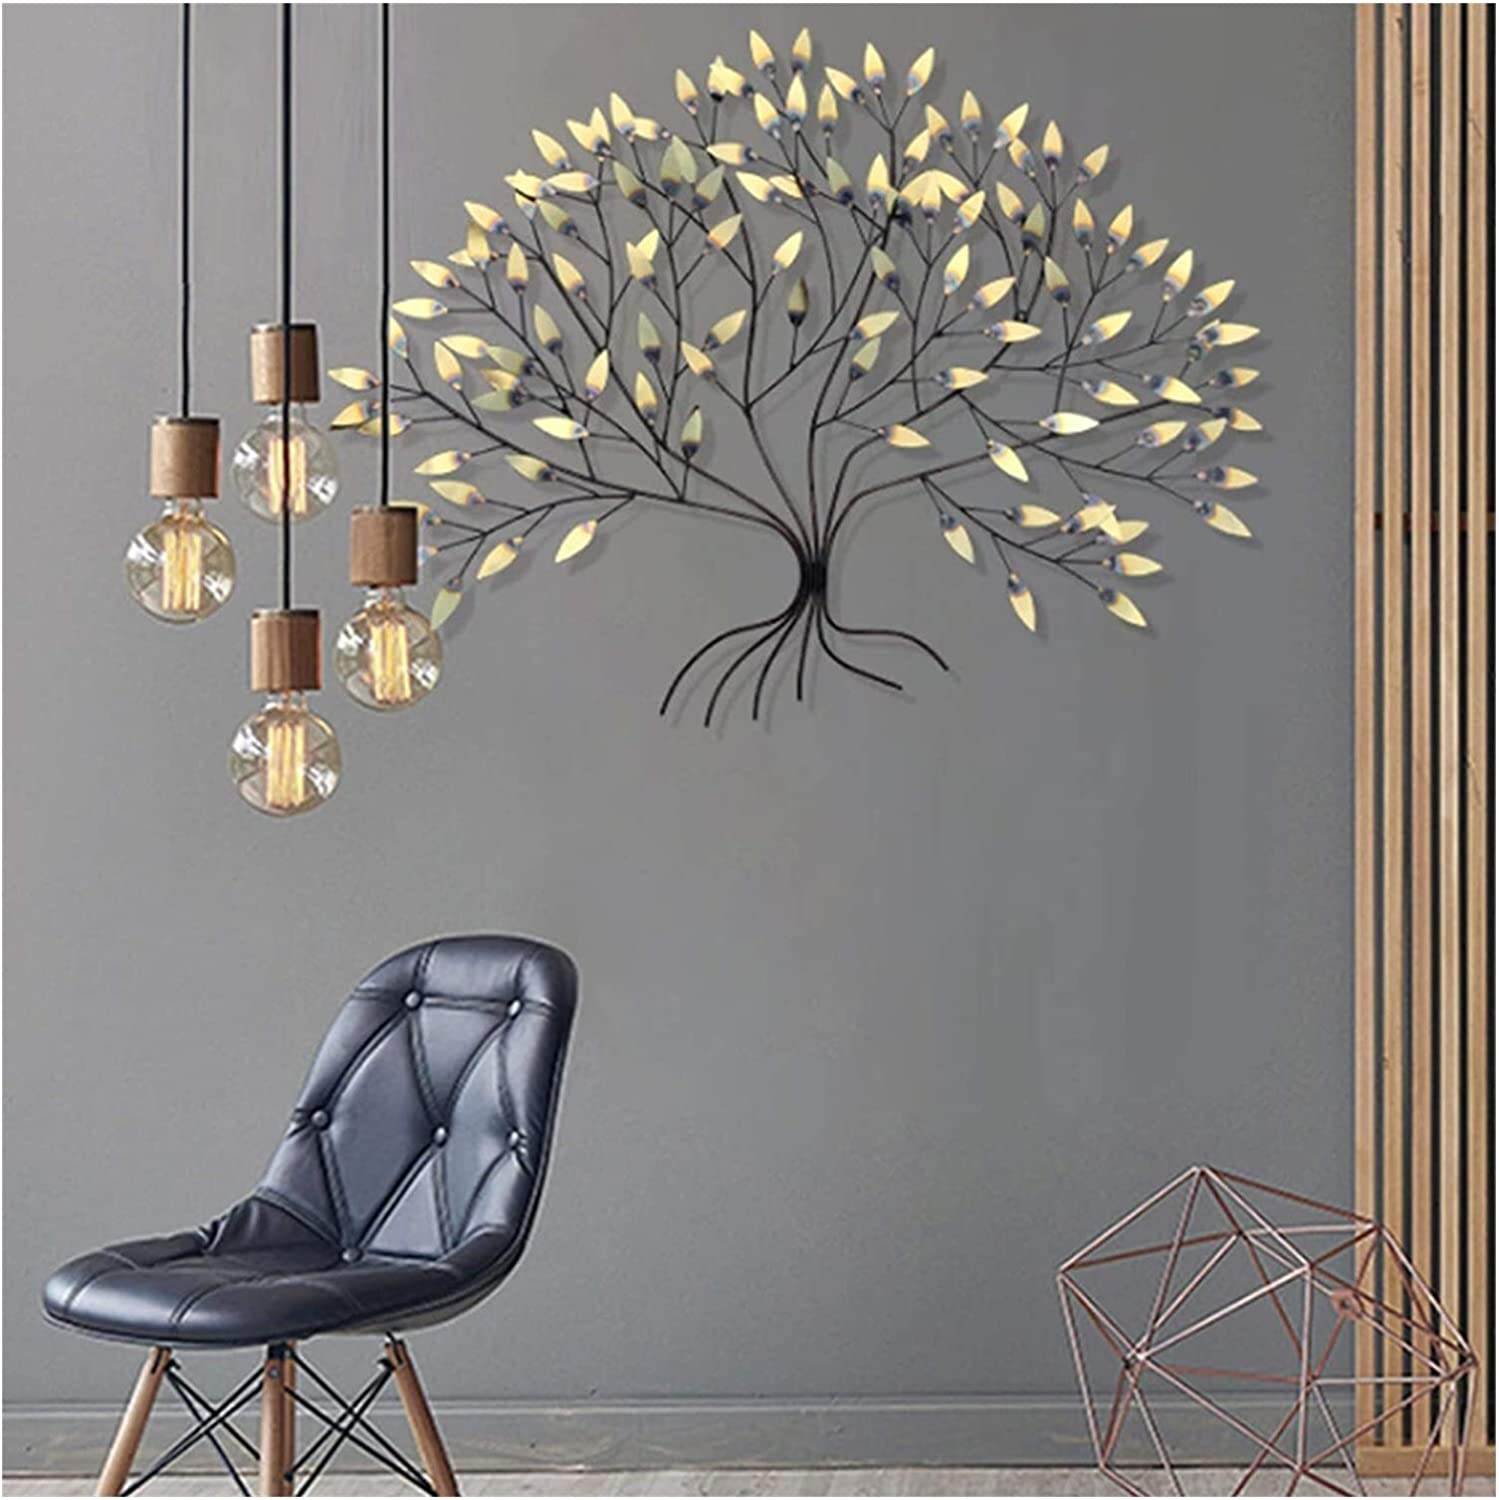 Large Metal Art Wall Decor For Living Room,Tree Of Life Wall Decoration,3D Wrought Iron Leaves Wall Sculpture,creative Contemporary Artwork Ornament Durable Smooth For Dining Room/Office/Study/Bedroom